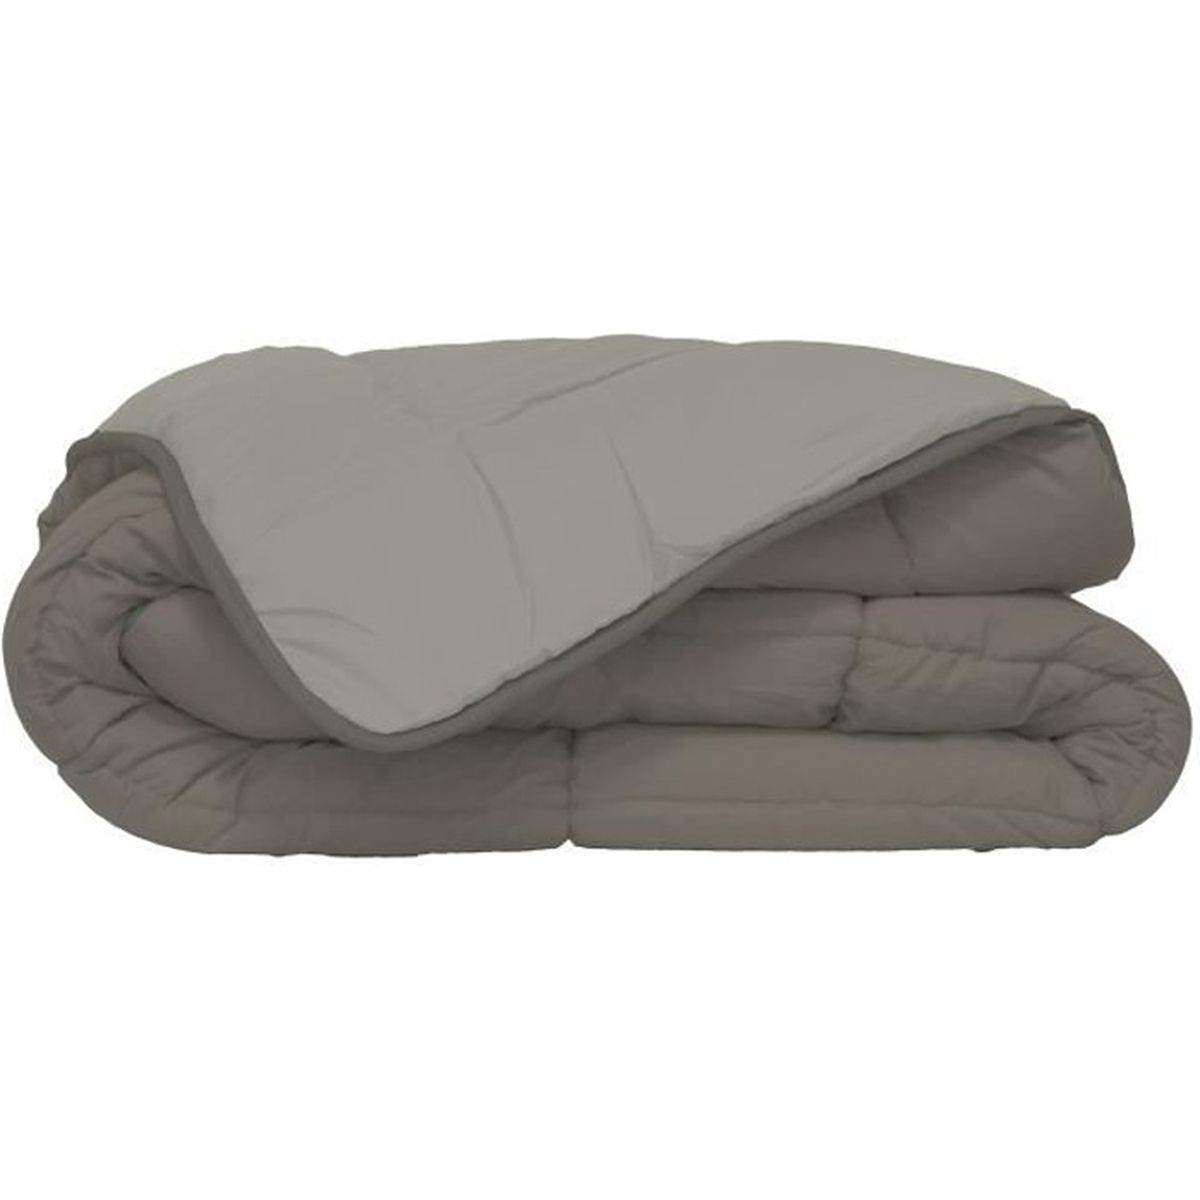 COUETTE Couette Microfibre 400g/m² CALGARY Taupe & Lin 220